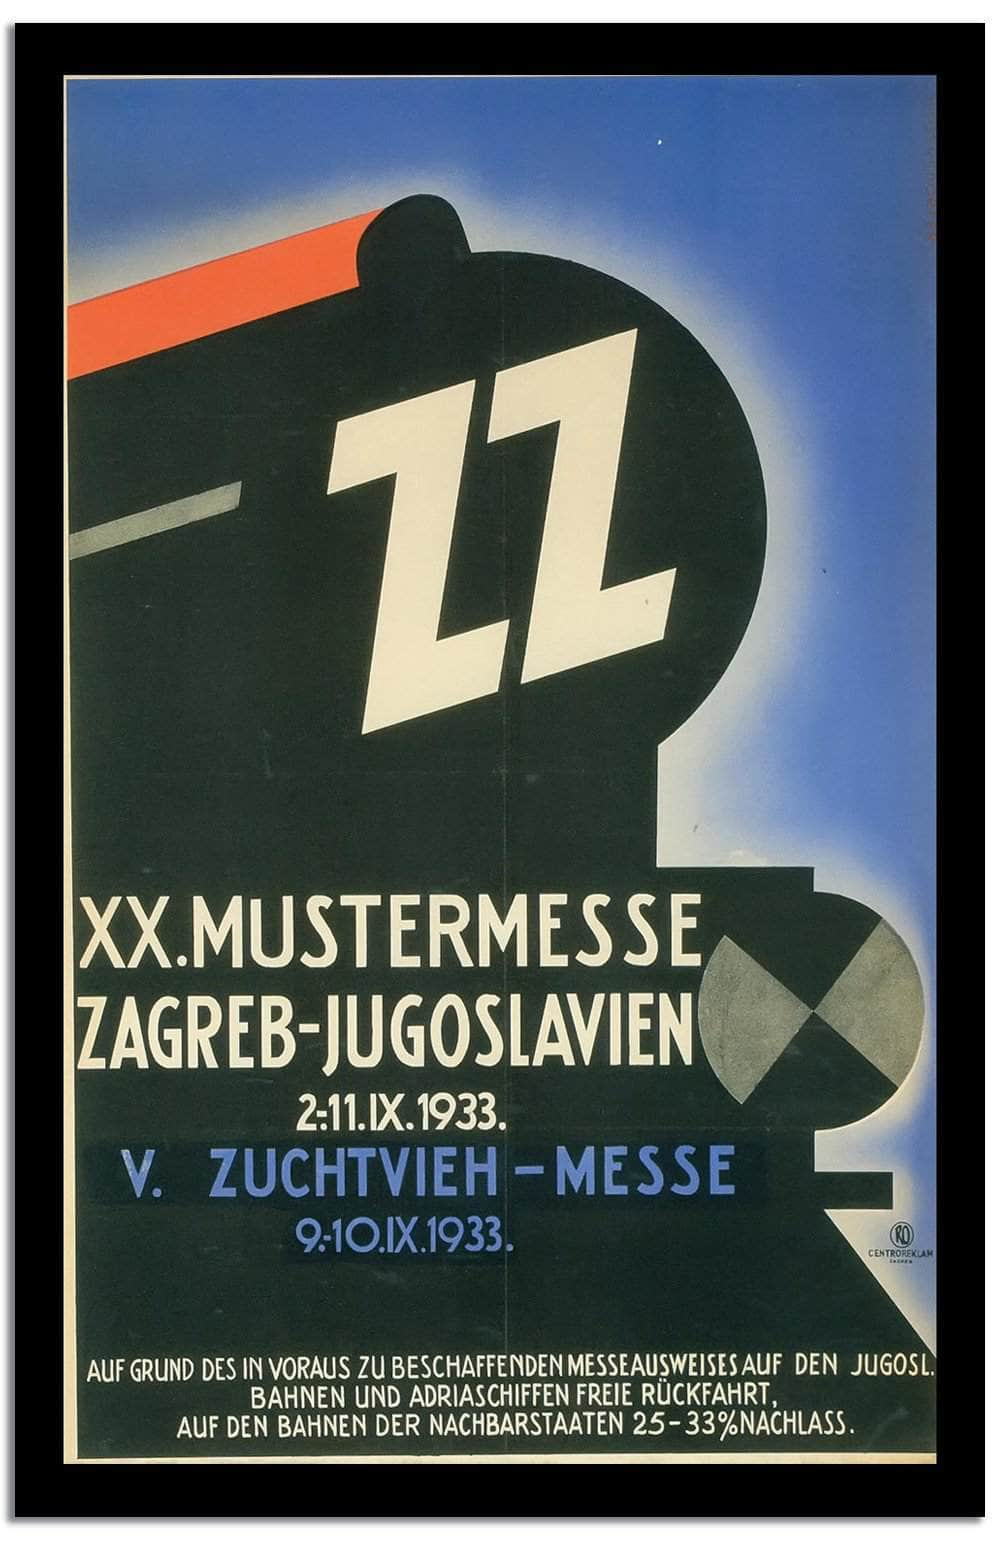 Xx.mustermesse  Vintage Poster